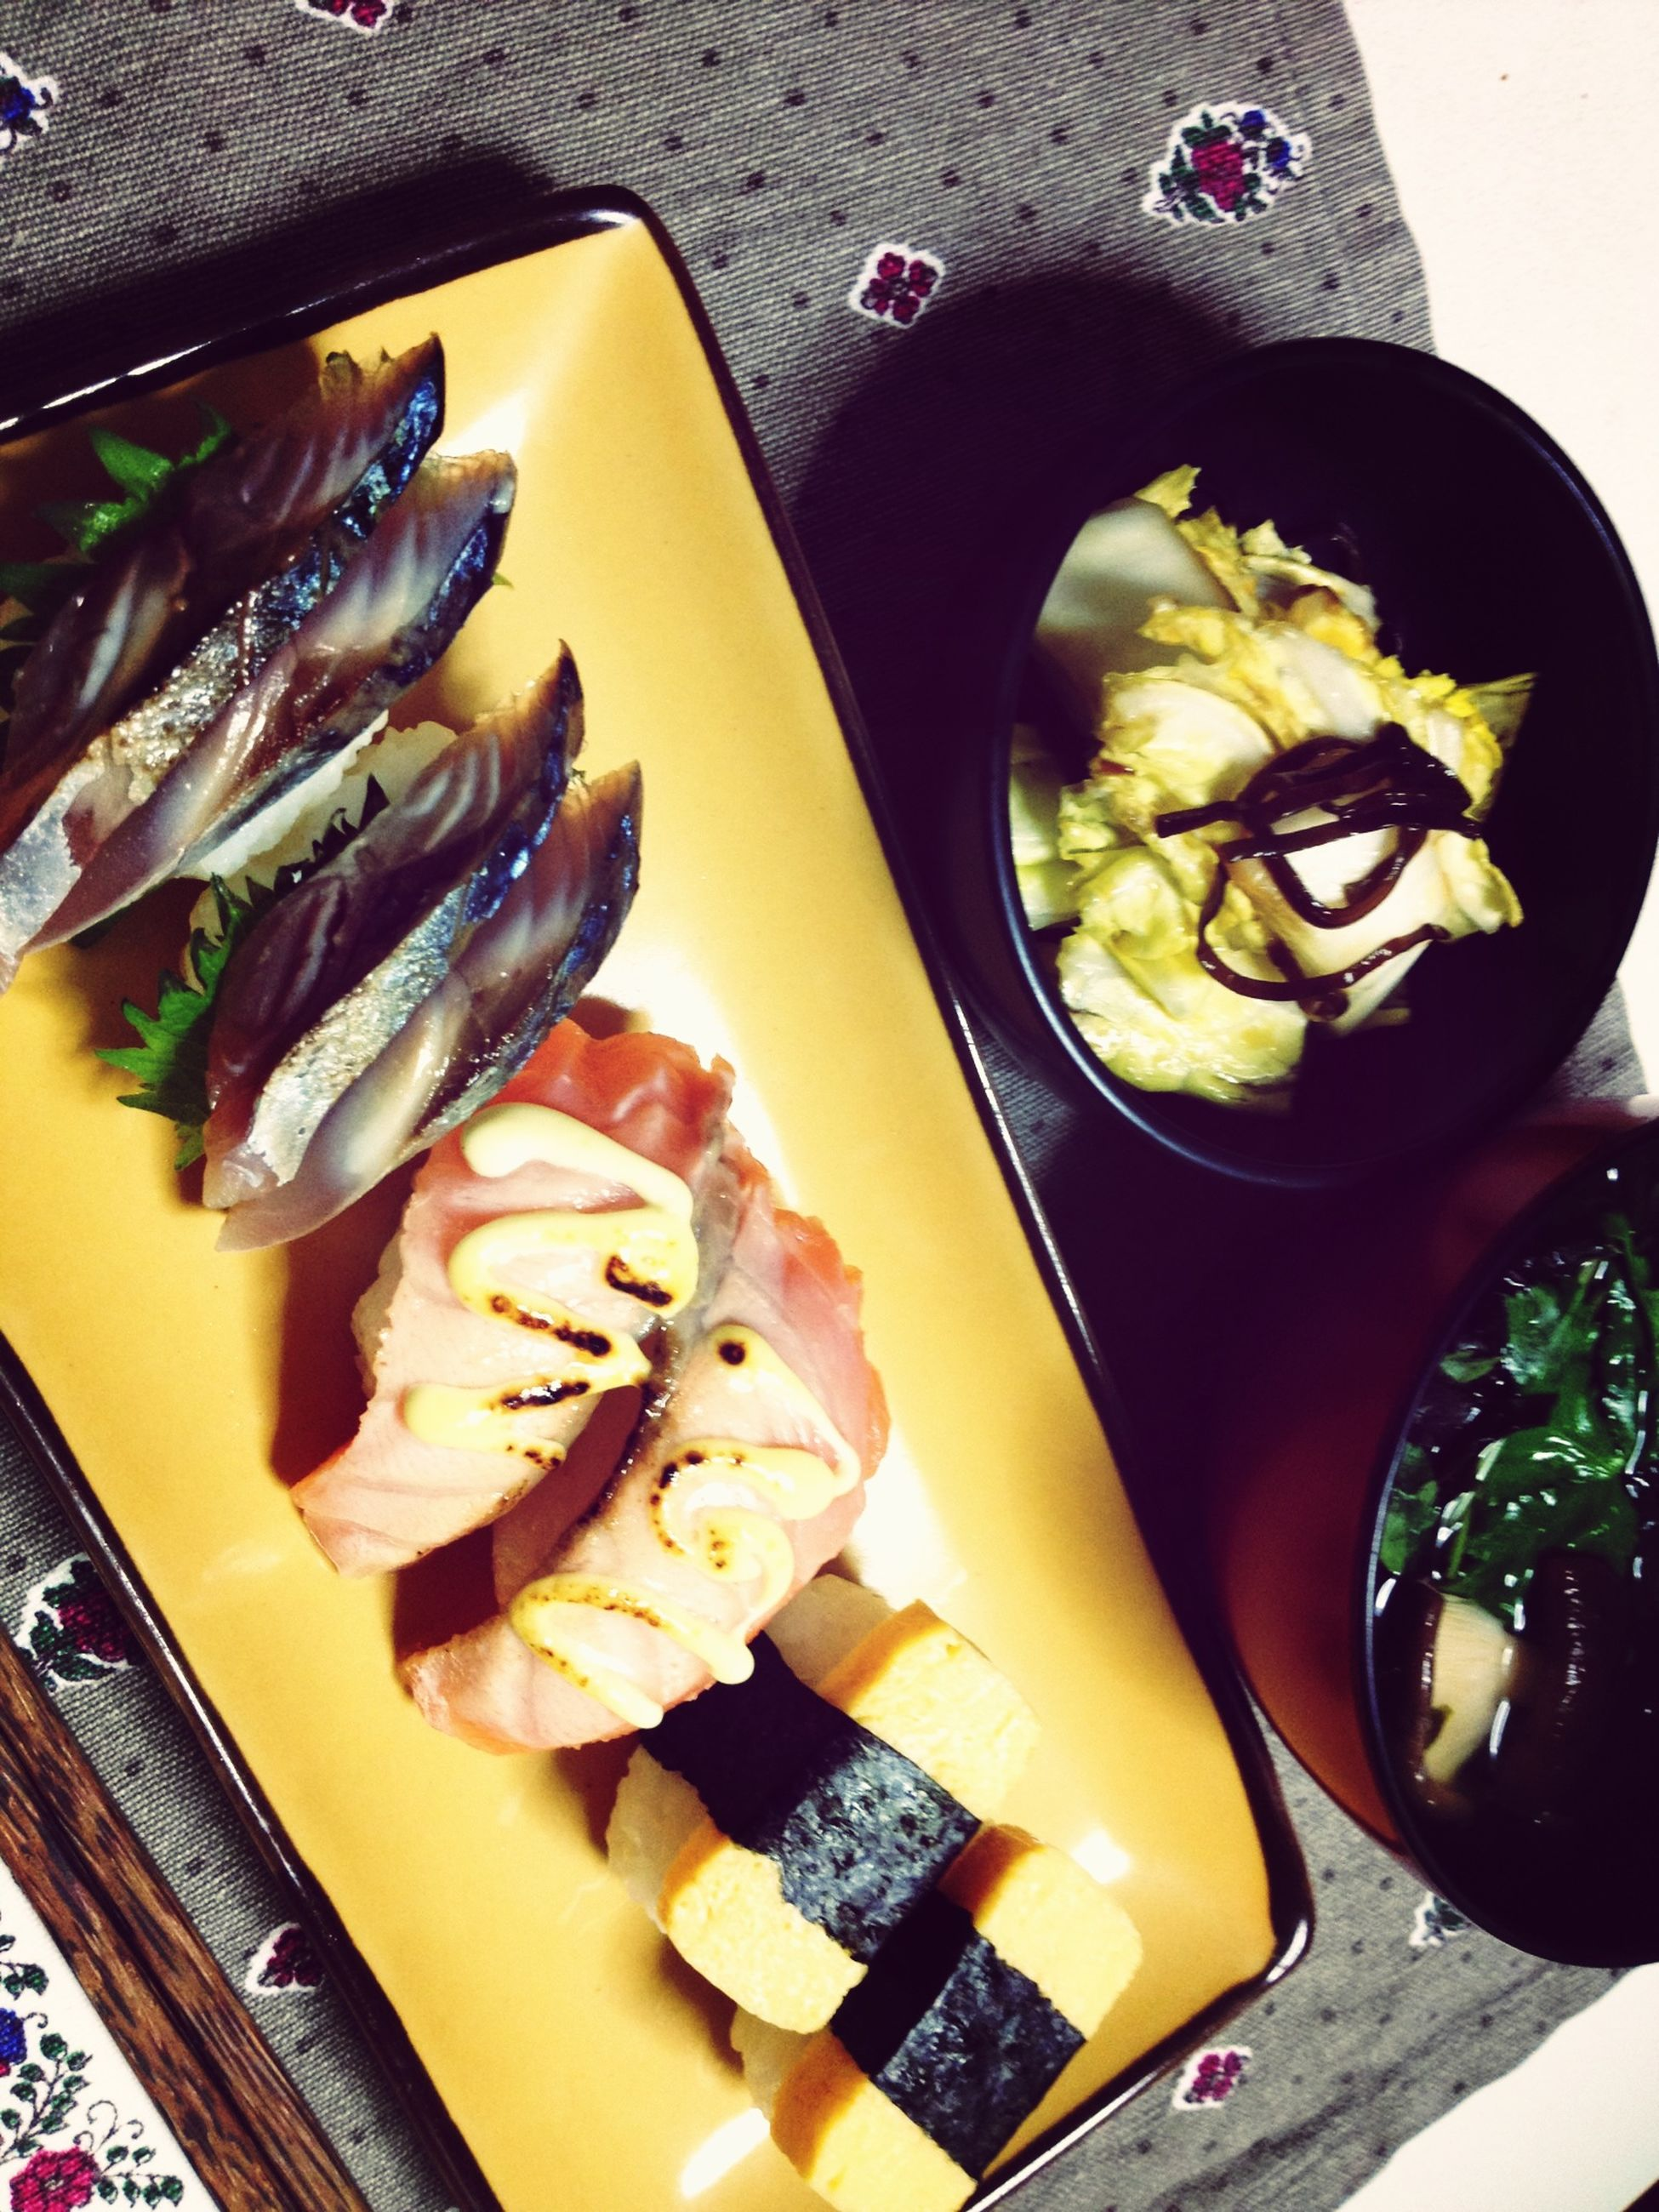 food and drink, food, freshness, indoors, healthy eating, ready-to-eat, still life, plate, high angle view, table, seafood, meal, meat, serving size, vegetable, indulgence, slice, japanese food, variation, close-up